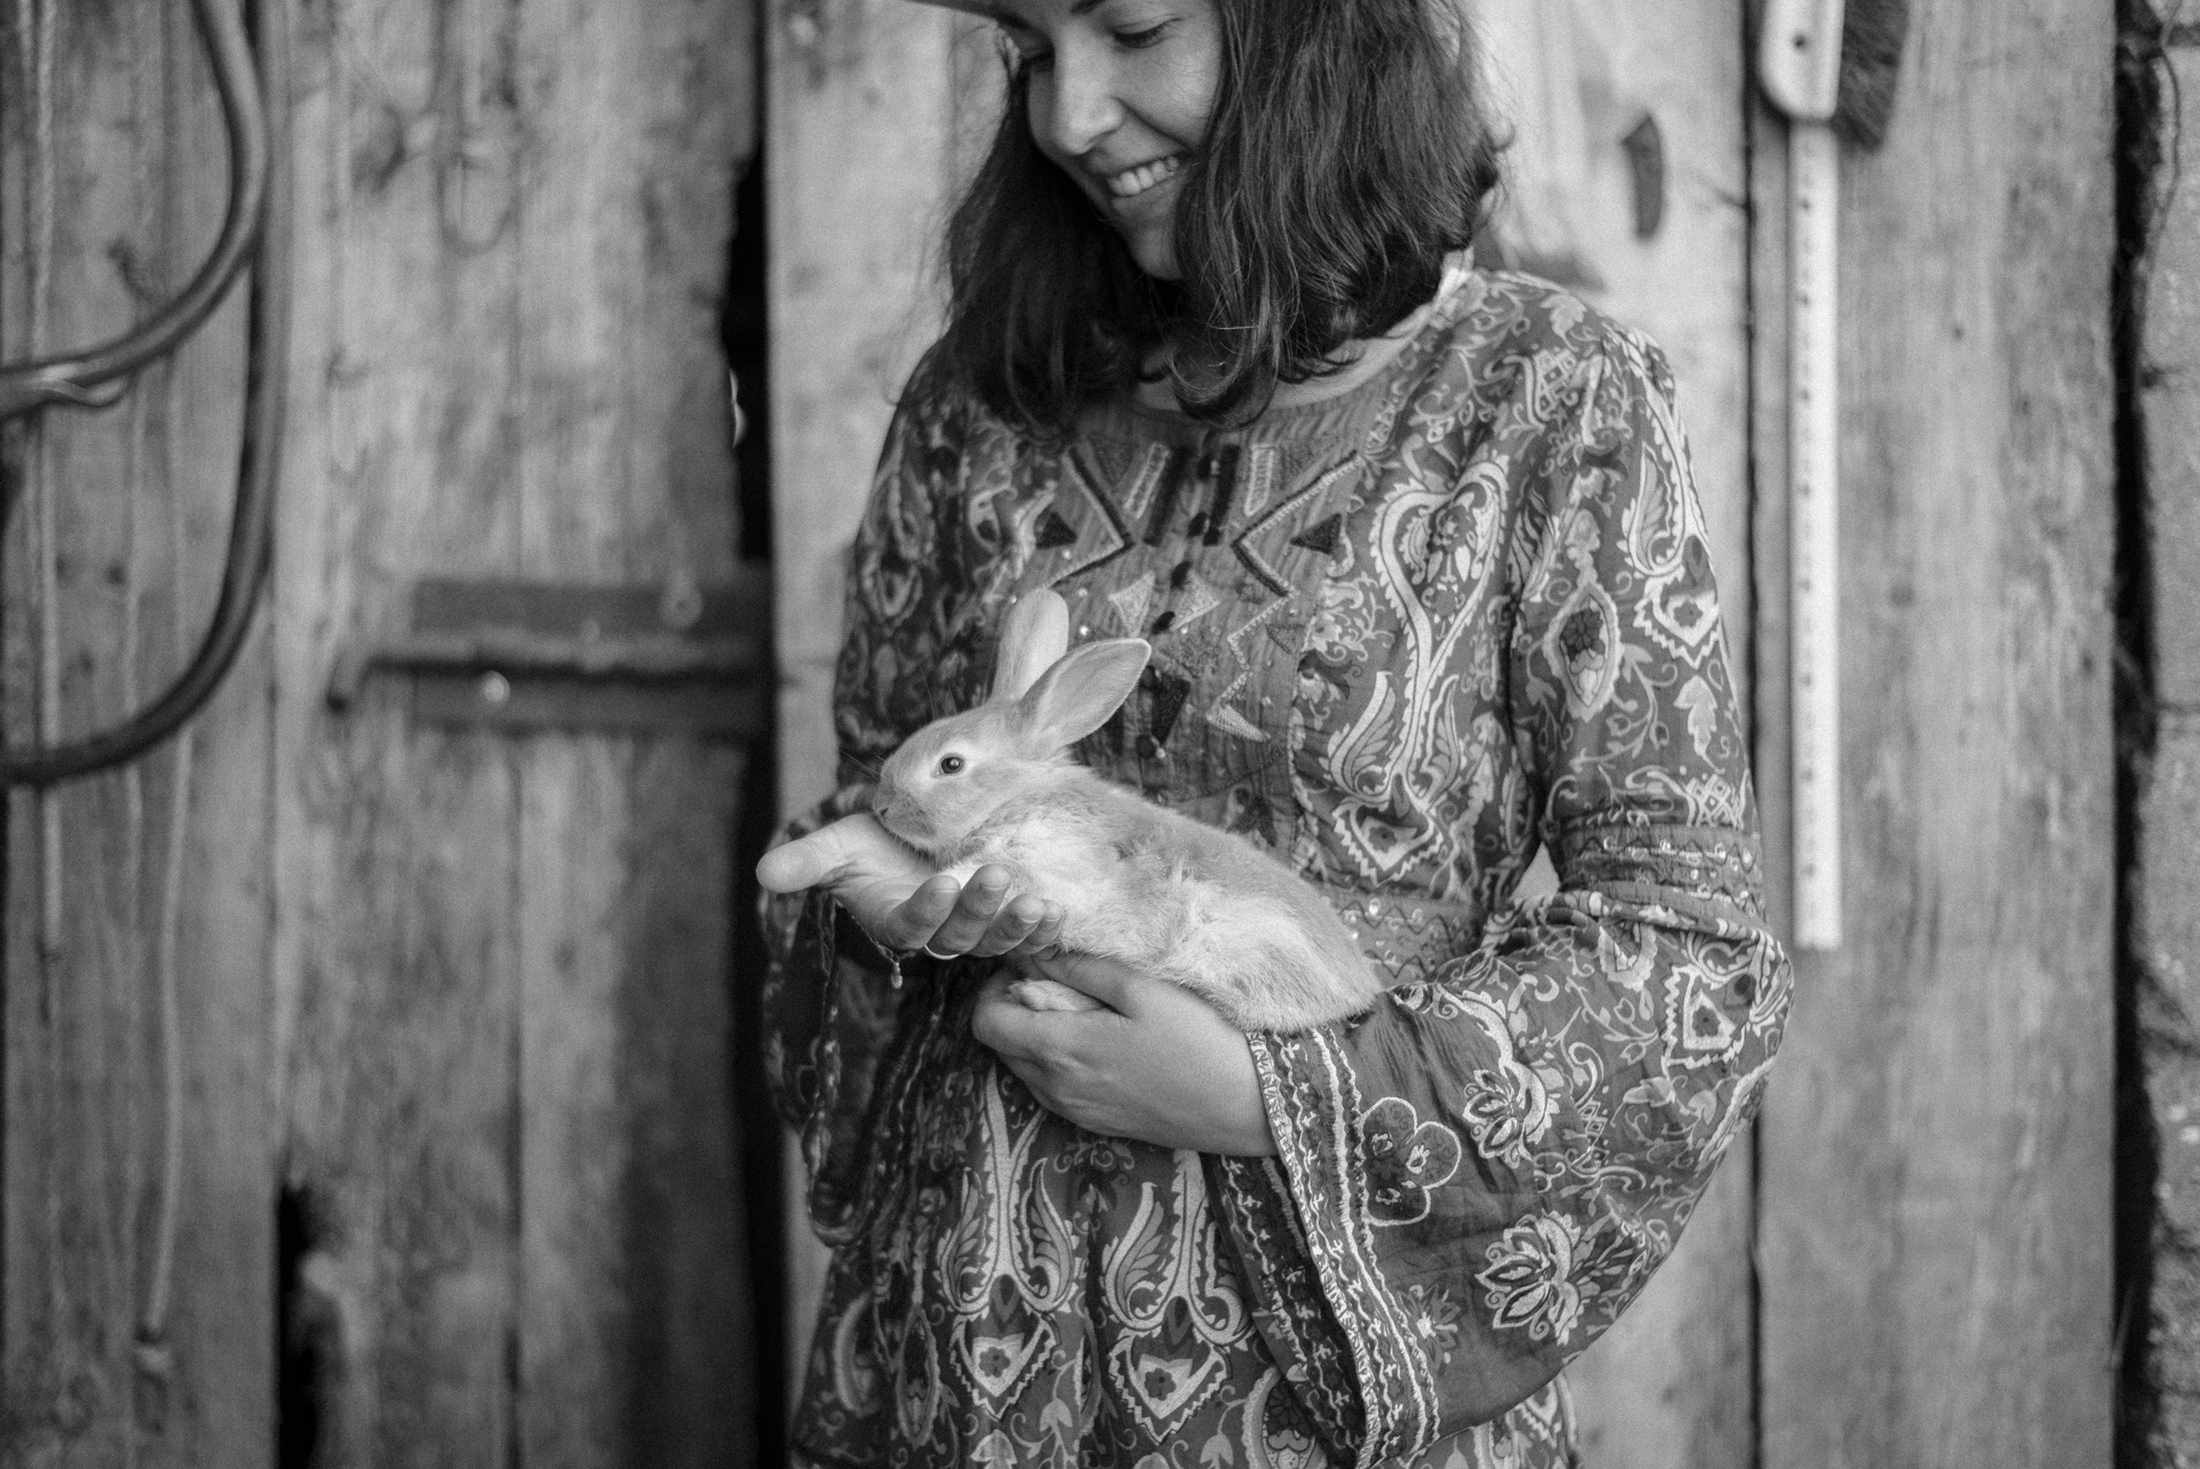 holding a little rabbit Portrait Photography Black and White